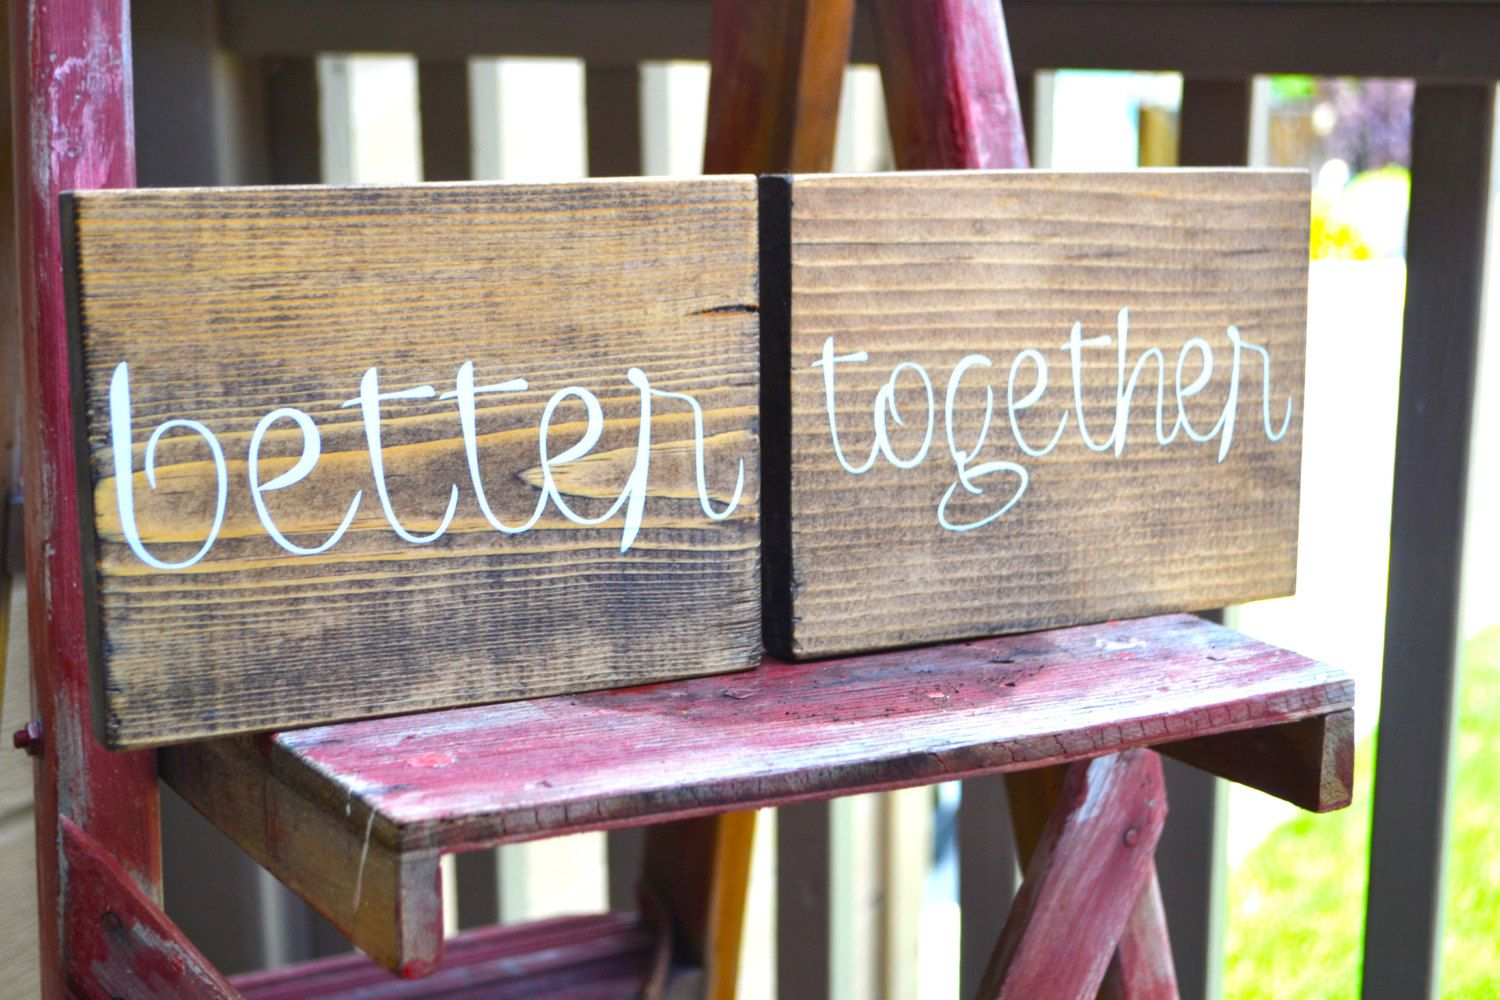 Better Together Signs Rustic Wedding Signs Sweetheart Table Signs Mr and Mrs Wedding Chair Signs (19.00 USD) by MintageDesigns